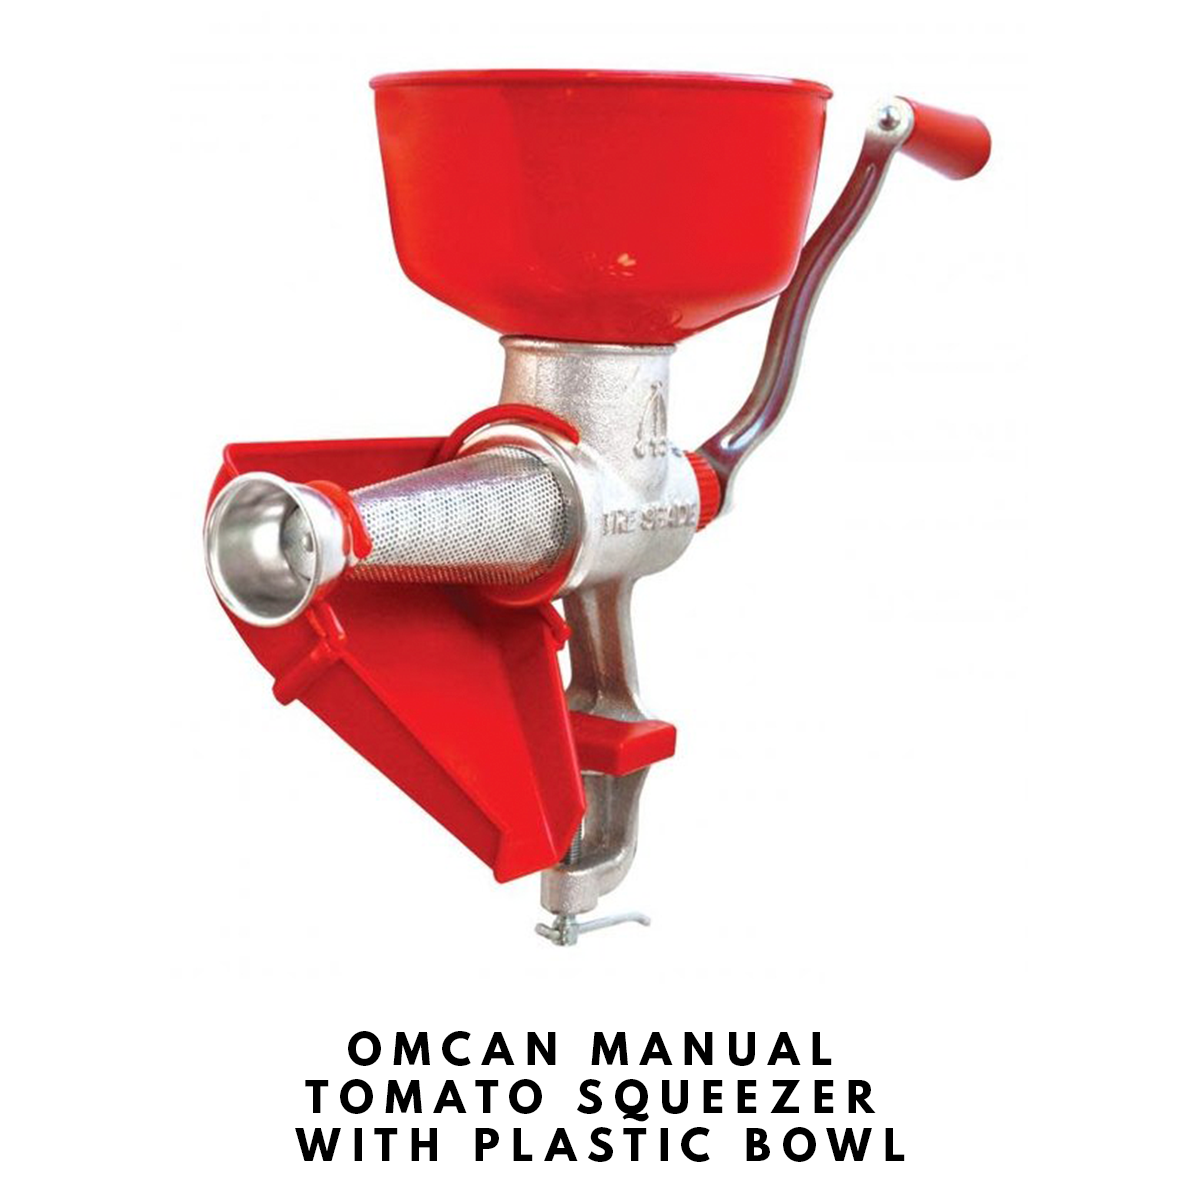 OMCAN+MANUAL+TOMATO+SQUEEZER+WITH+PLASTIC+BOWL